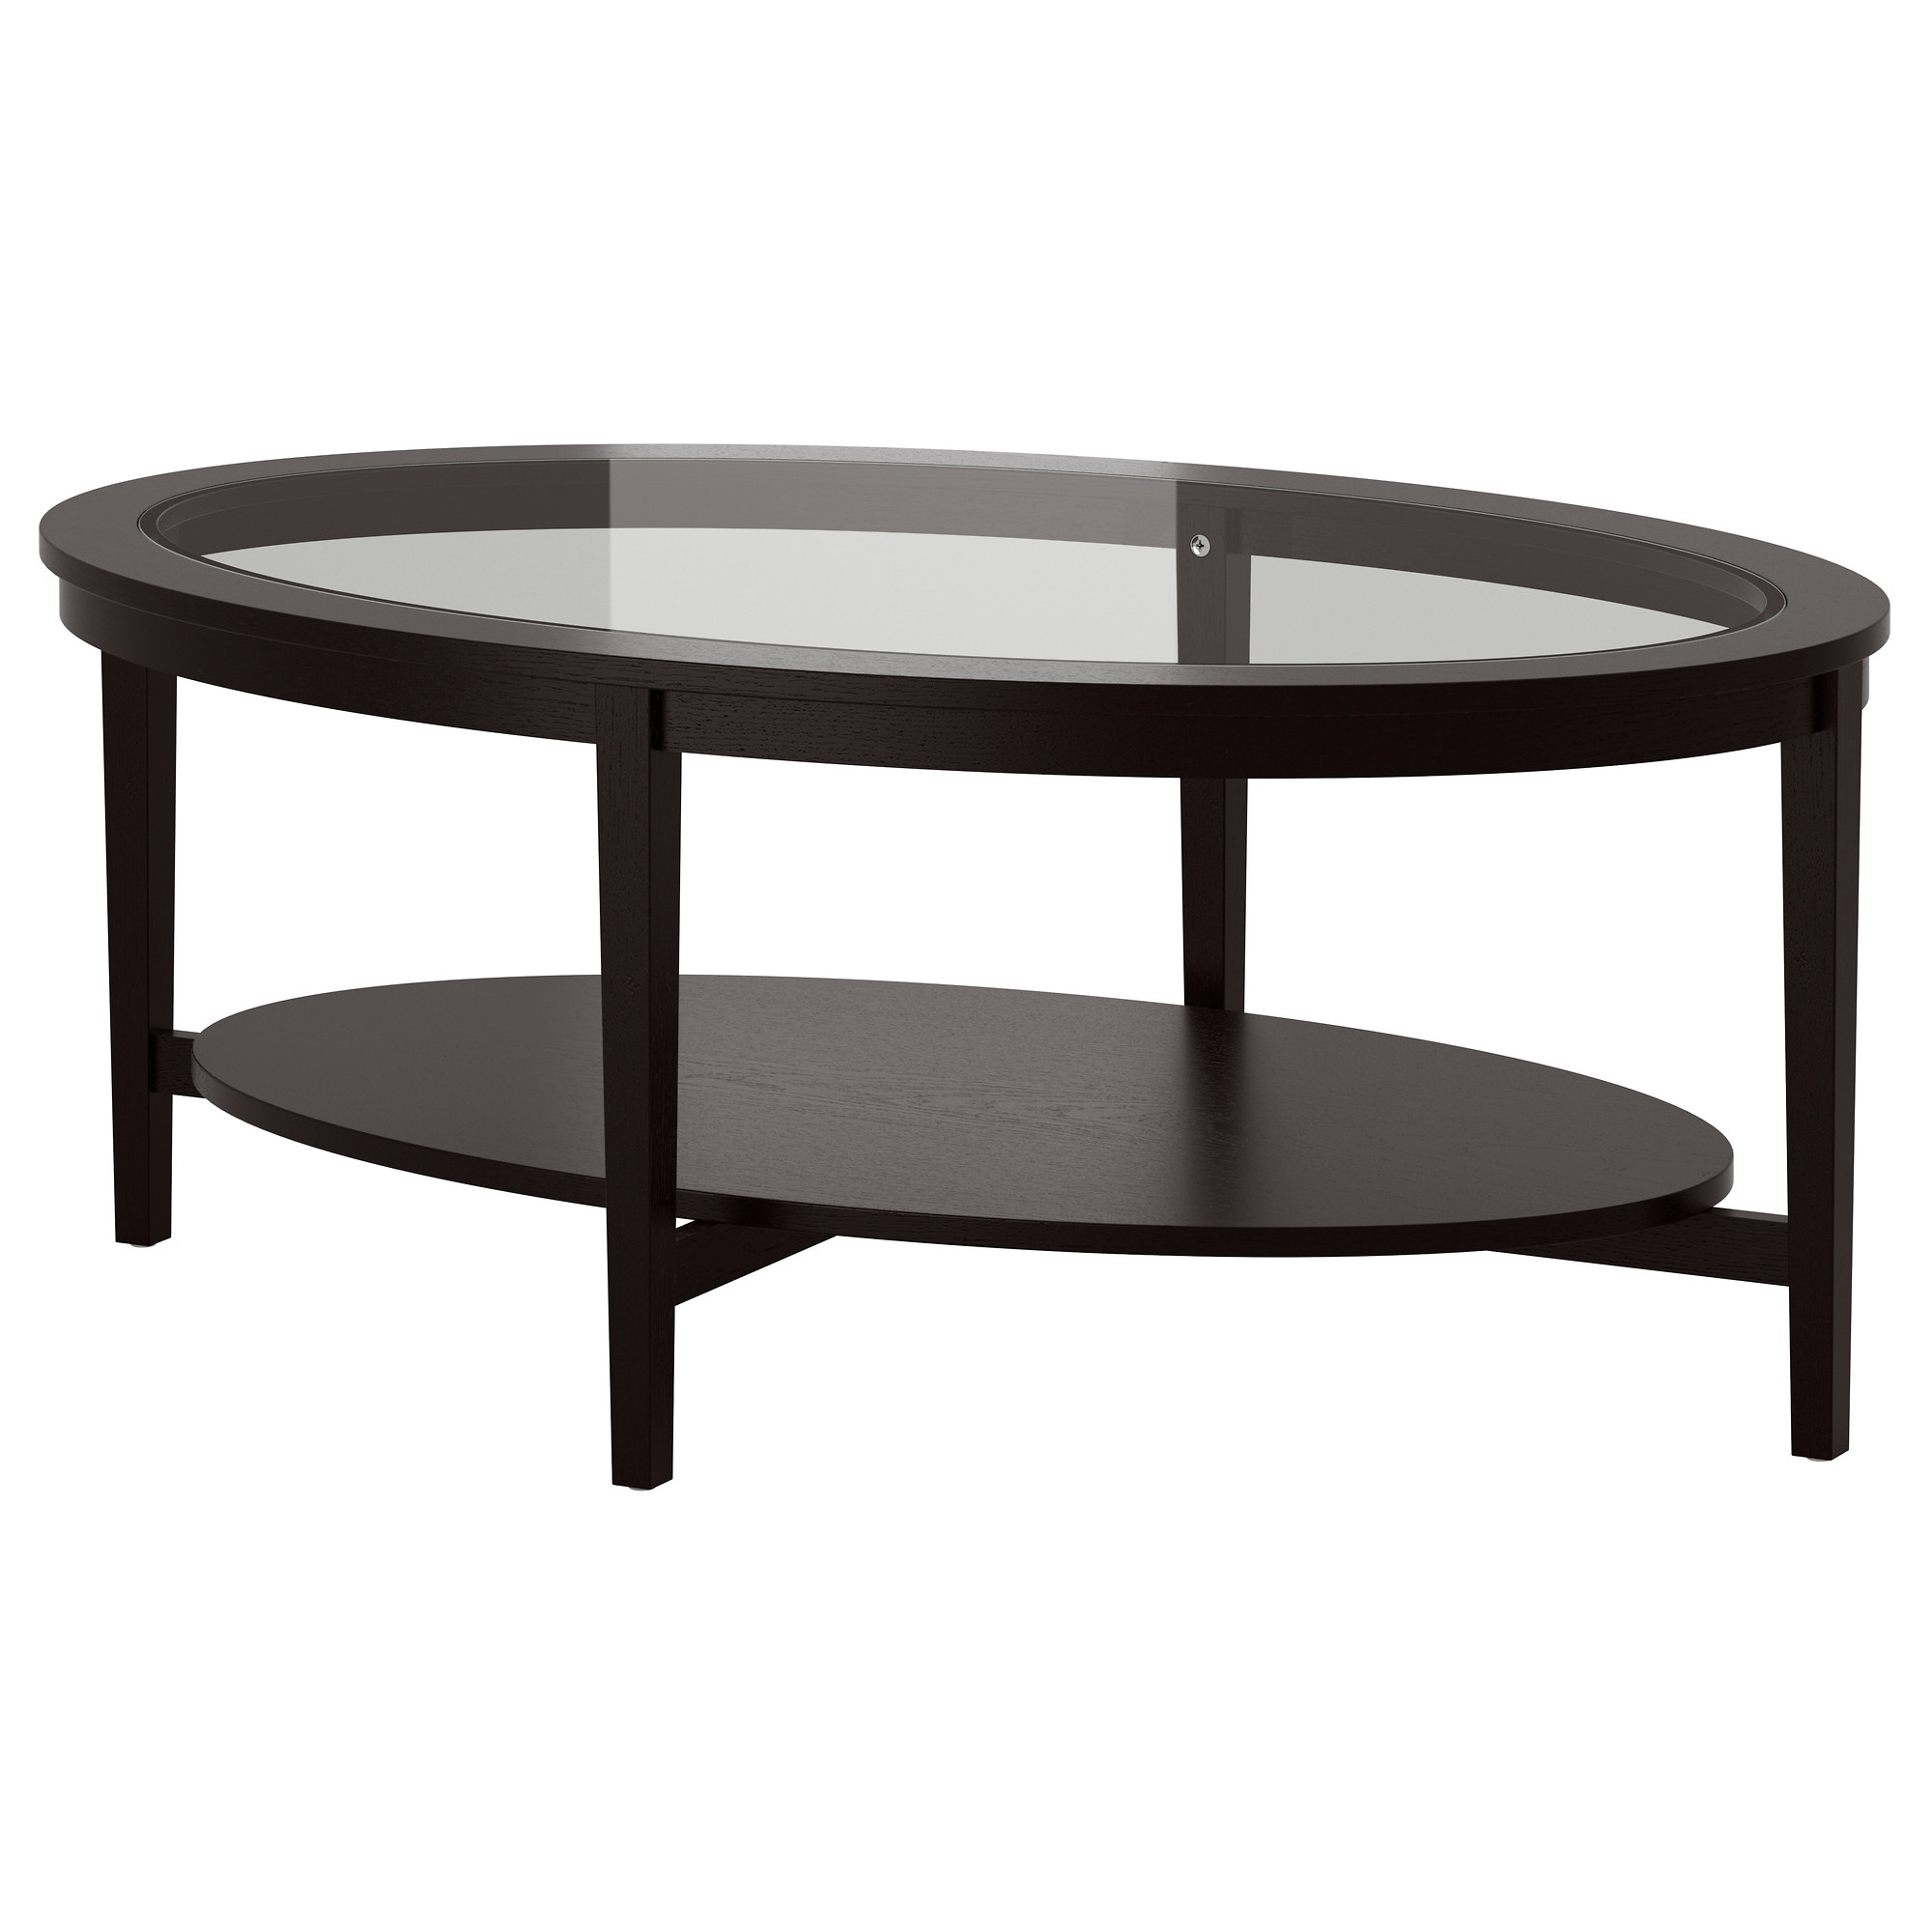 MALMSTA Coffee table IKEA